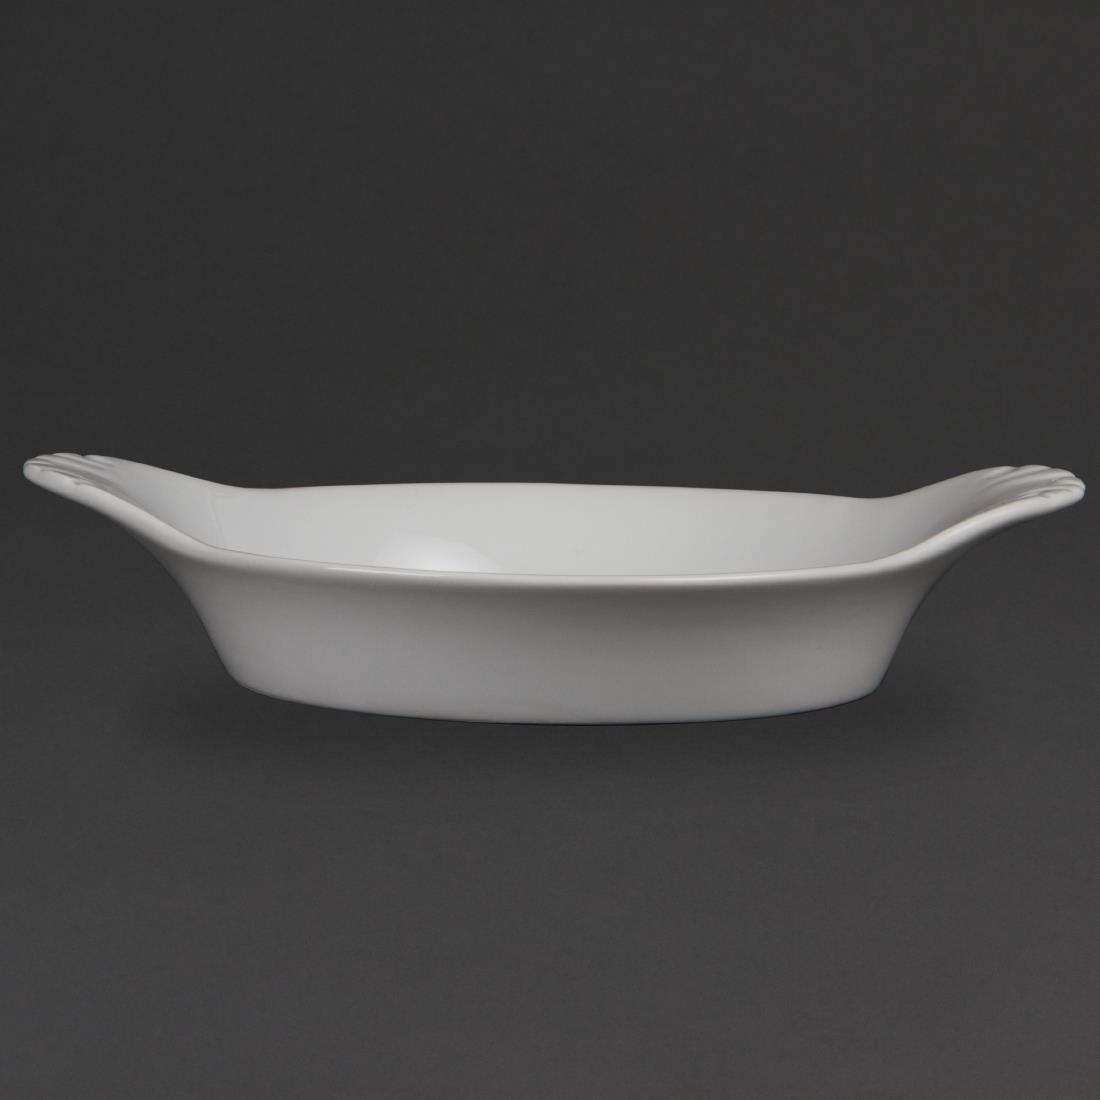 Olympia Whiteware Round Eared Dishes 220mm